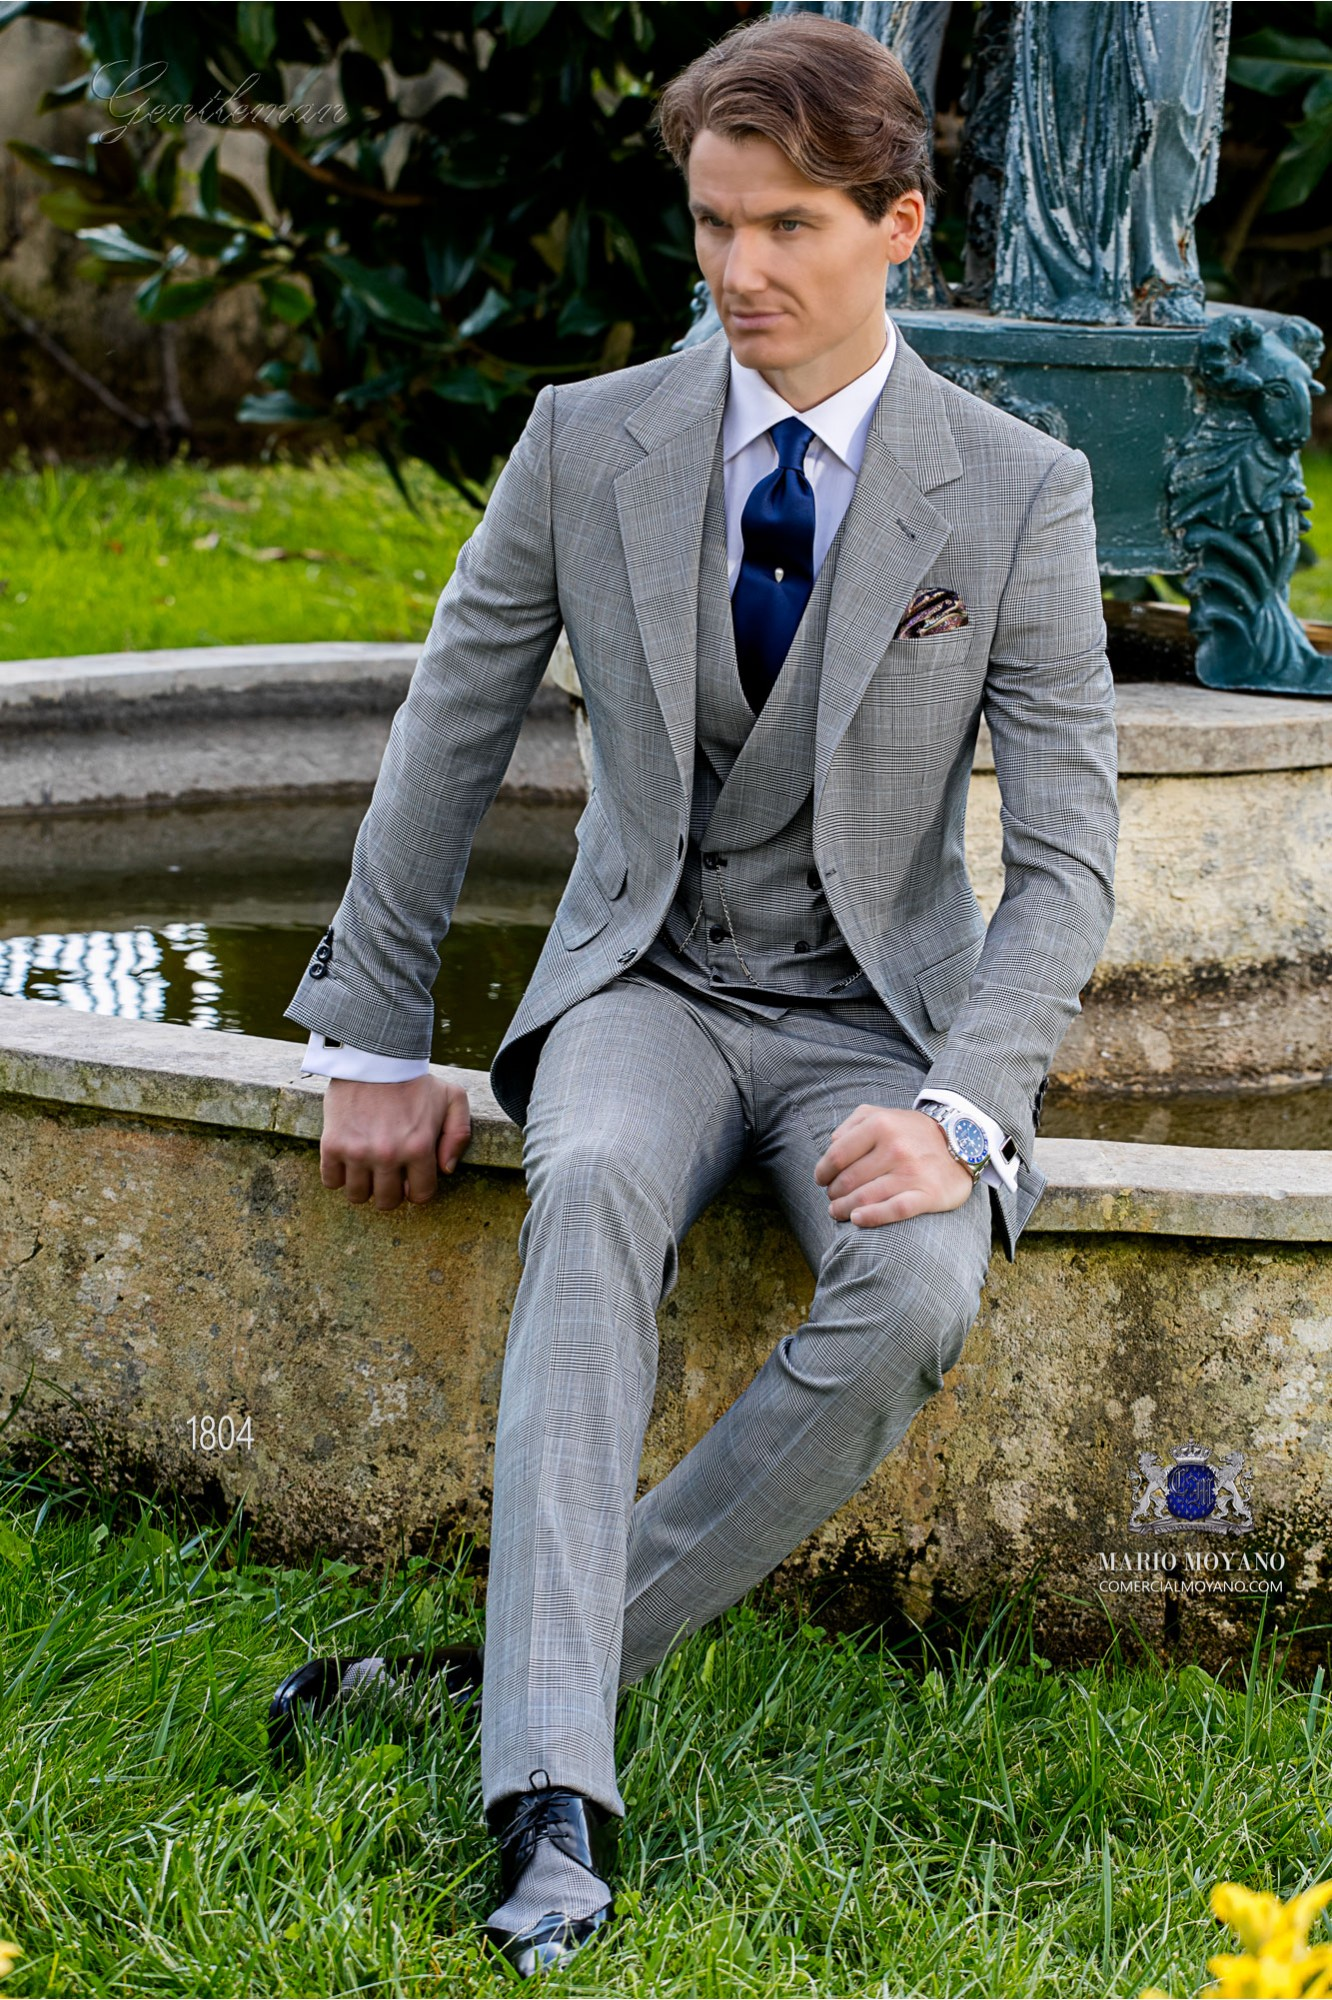 Bespoke Prince of Wales grey and blue suit model 1804 Ottavio Nuccio Gala